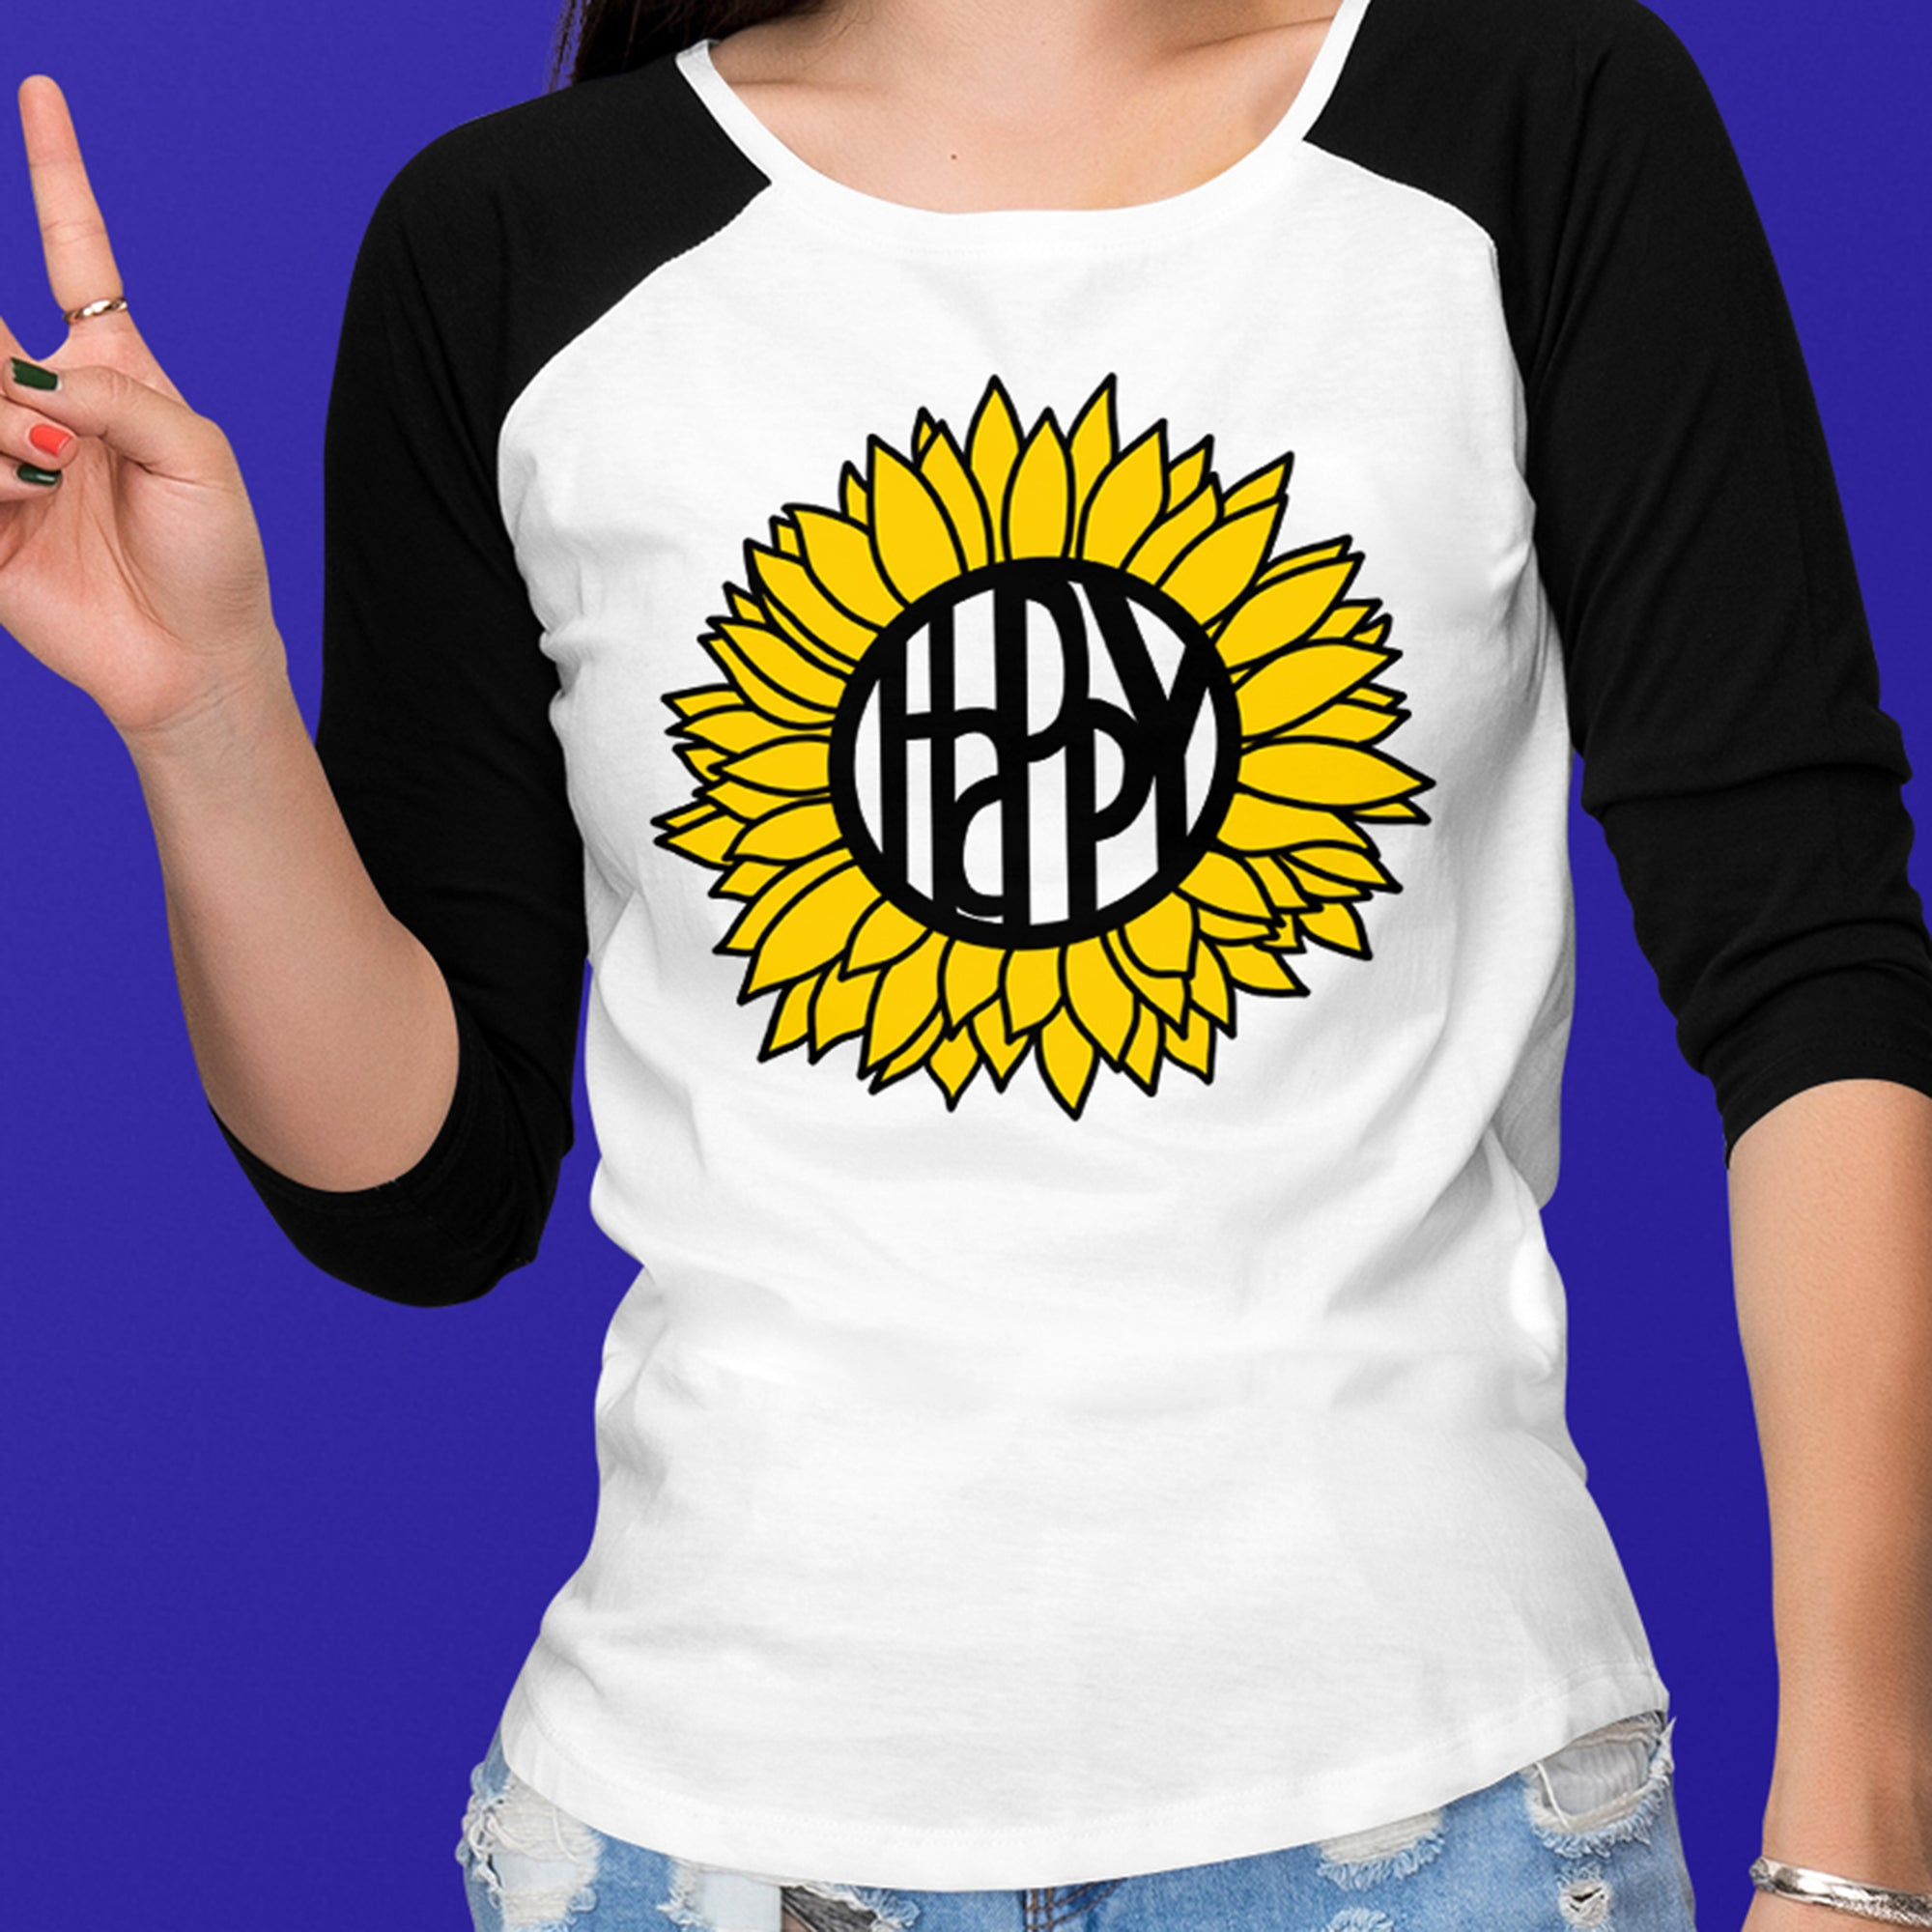 Sunflower SVG File, Big Yellow Sunflower SVG Cut File, Sunflower PNG, Sunflower Graphic